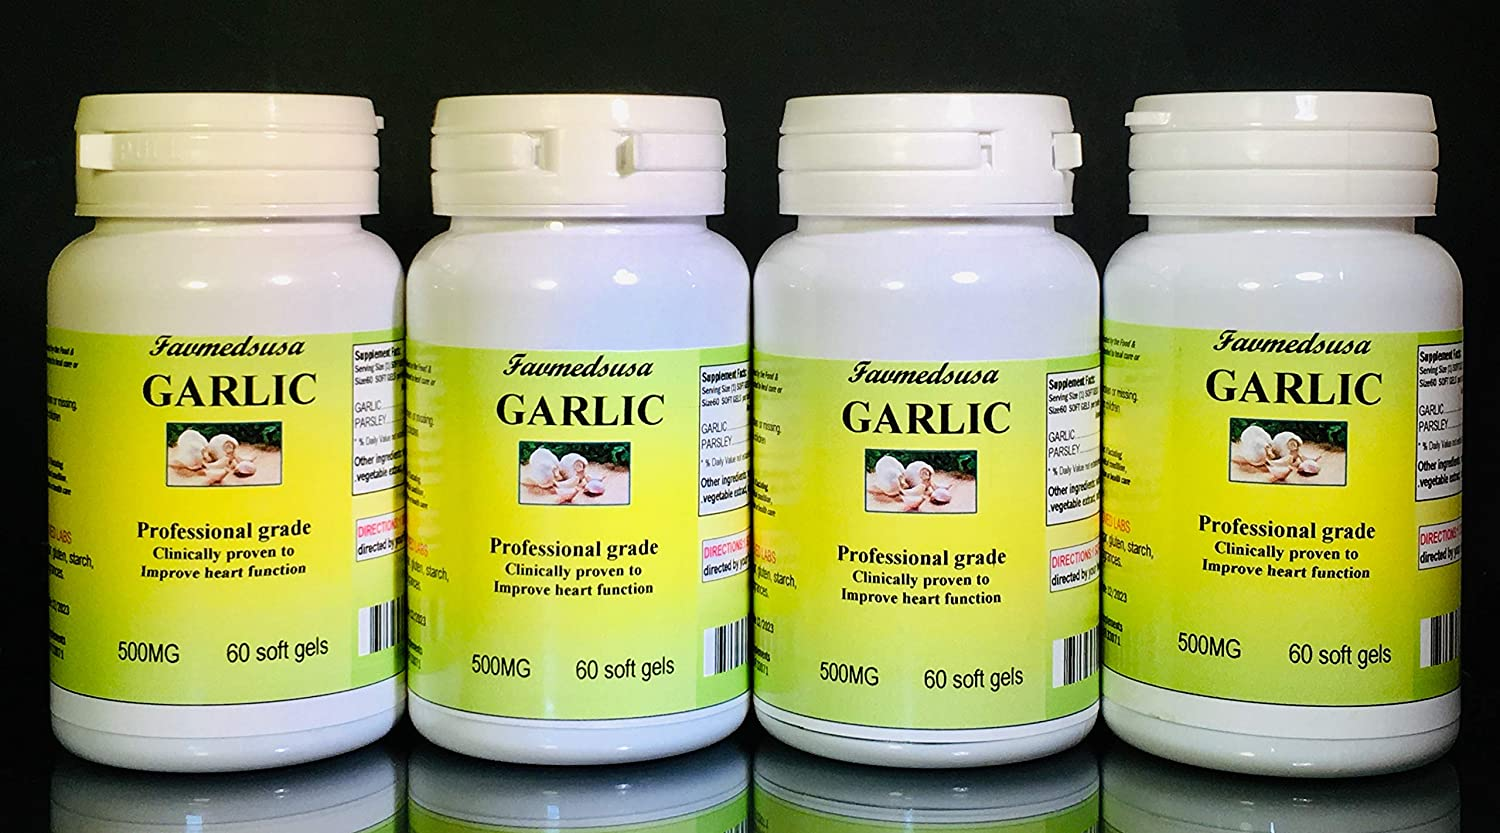 Garlic Parsley Made in USA 240 Max 90% OFF Department store - 4x60 softgels